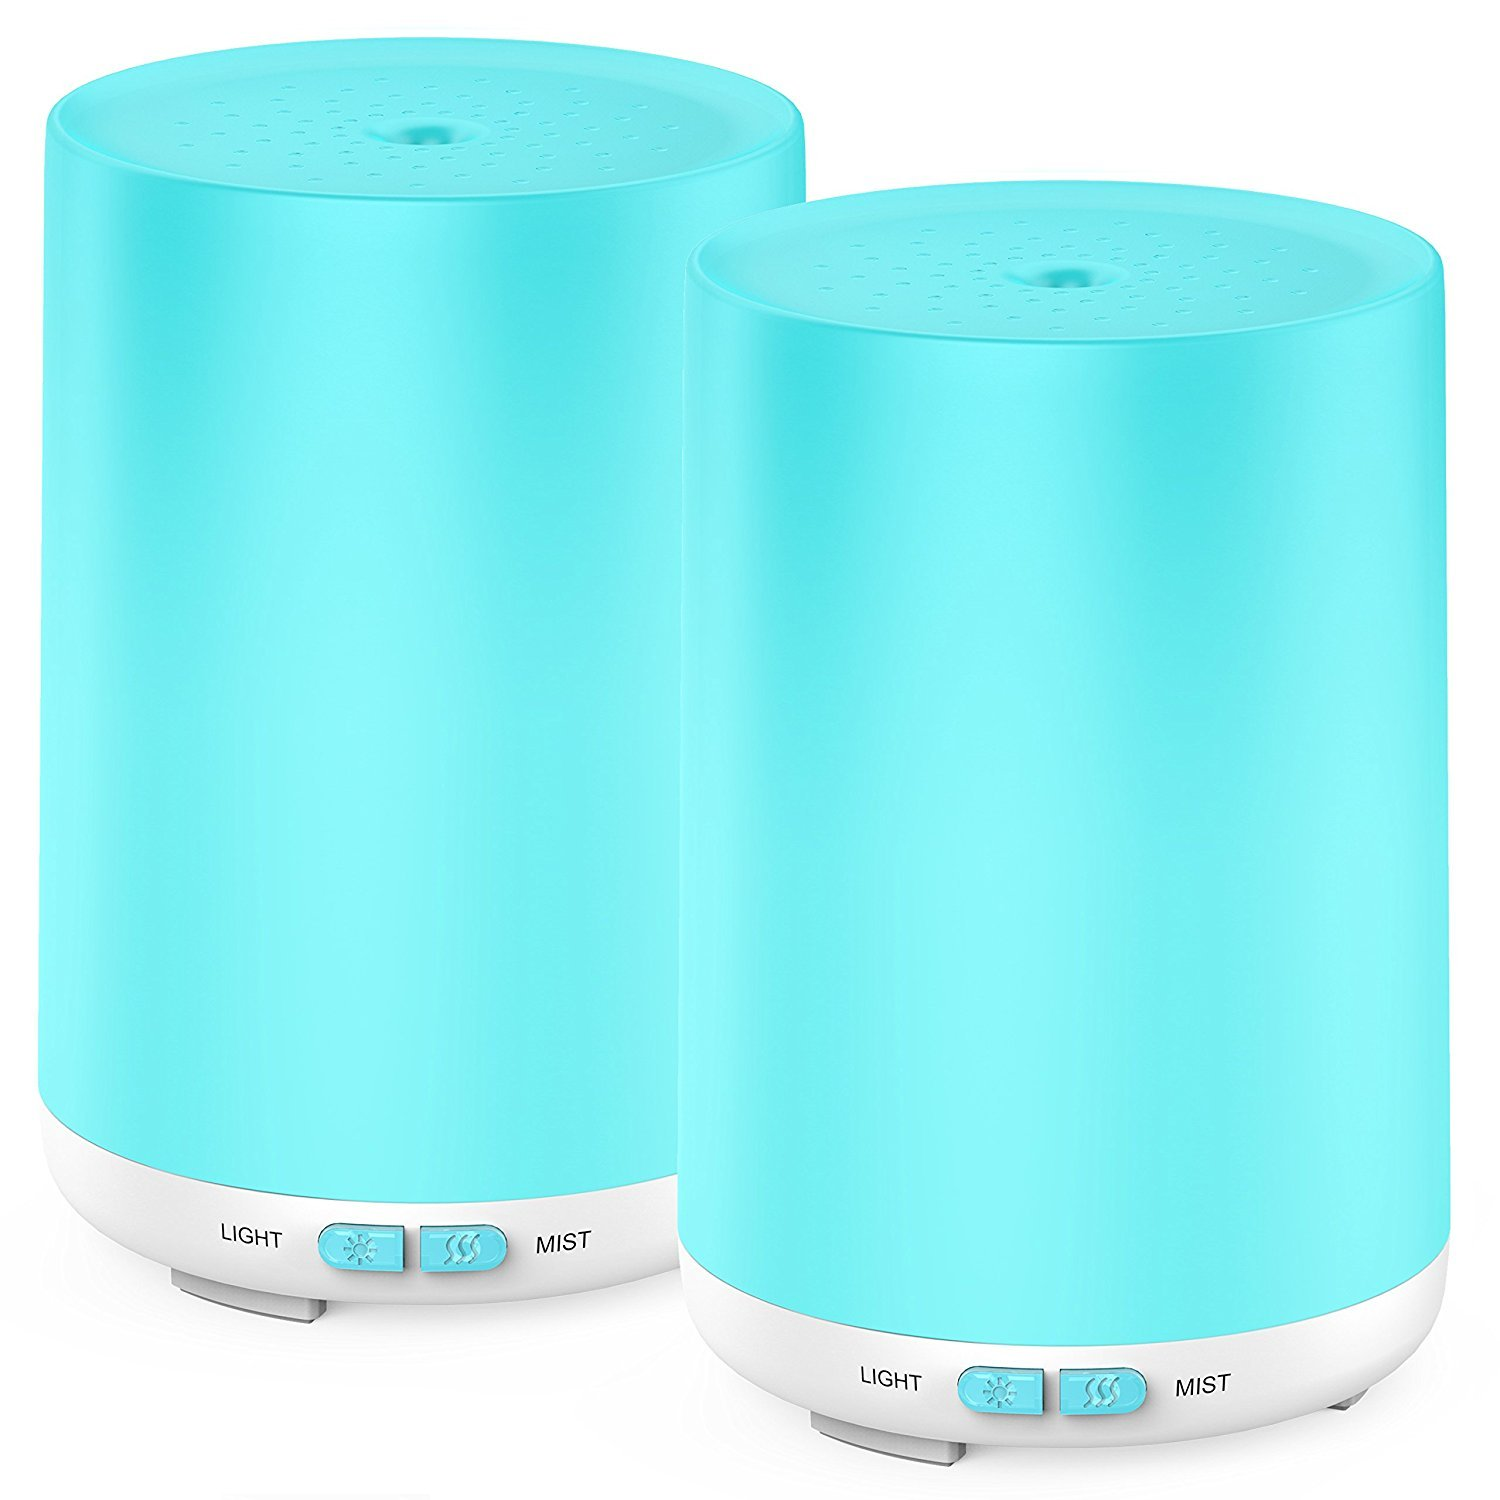 Leknes Essential Oil Diffuser, 120ml Diffuser with 2 Pack Aromatherapy Diffuser Portable Ultrasonic Cool Mist Humidifier with Mist Mode Adjustment,7 LED Colors and Waterless Auto Shut-Off for Home